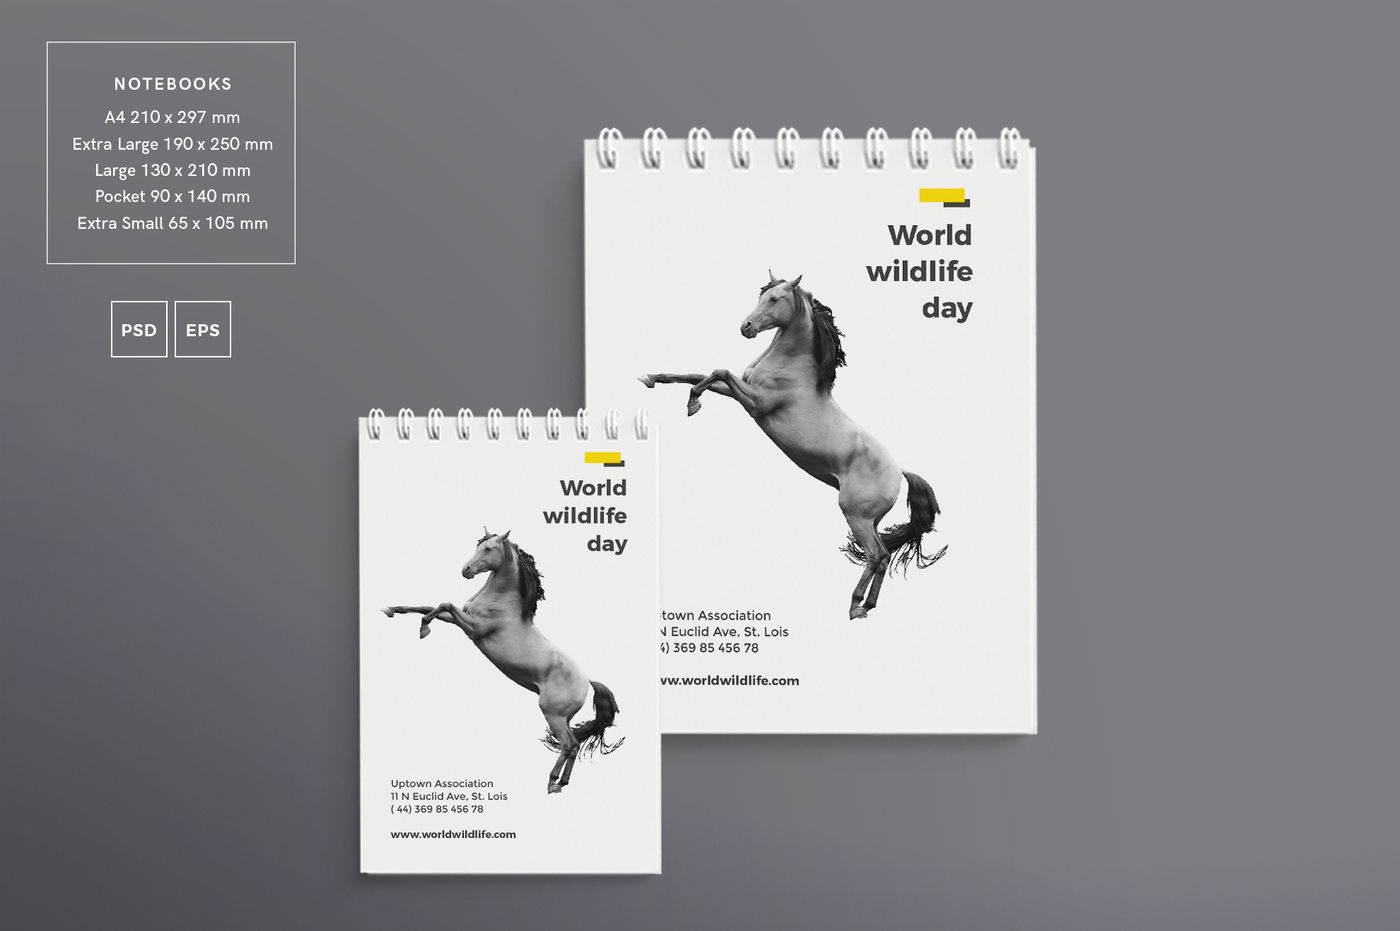 Download A5 Notebook Mockup Psd Yellowimages